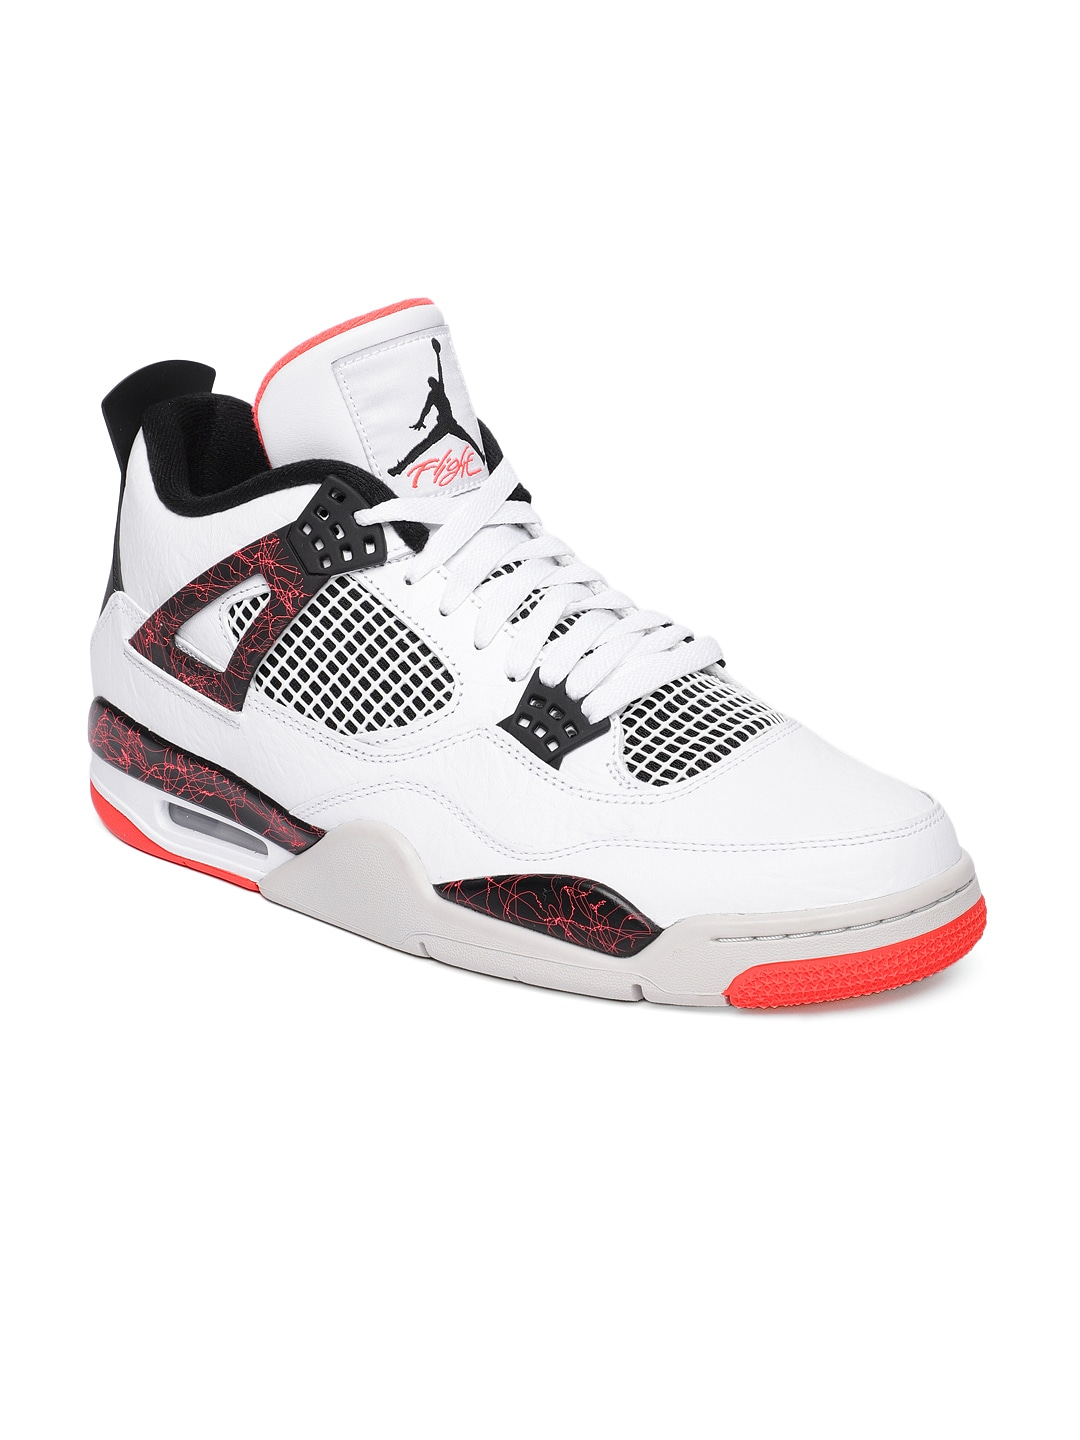 43608d2300e6 Jordan Shoes - Buy Jordan Shoes For Men Online in India